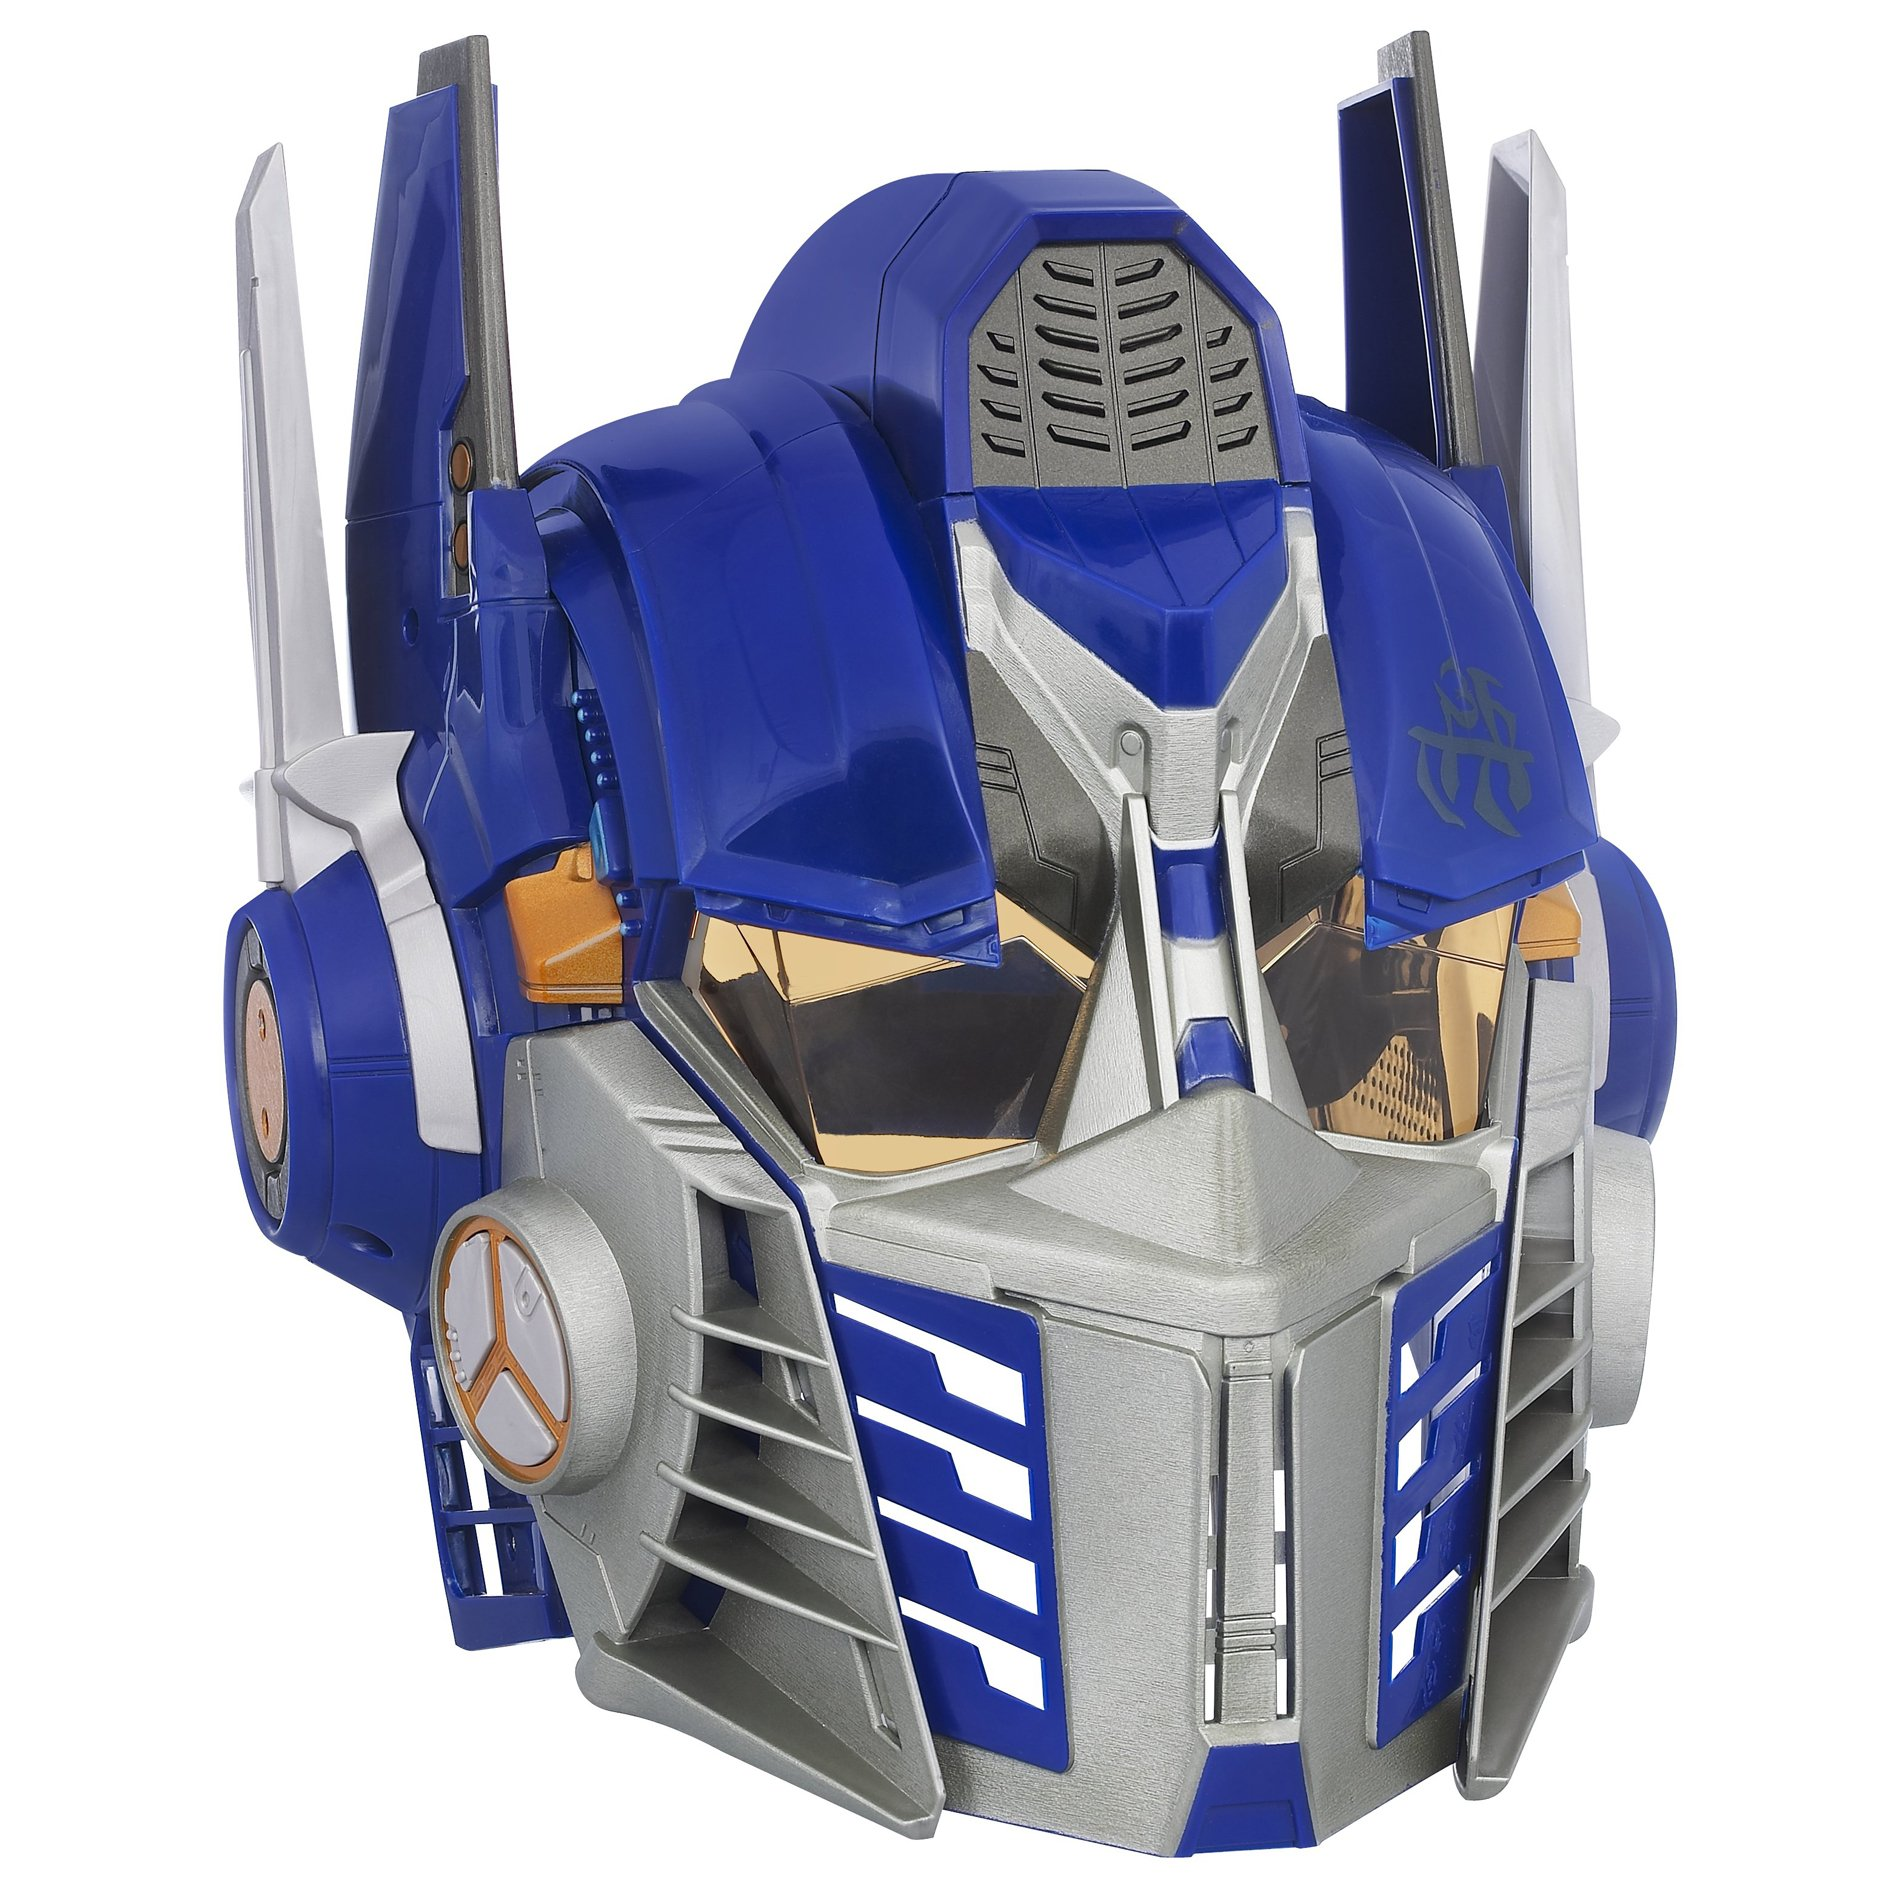 Transformers: Dark of the Moon - Robo Power - Optimus Prime Cyber Helmet